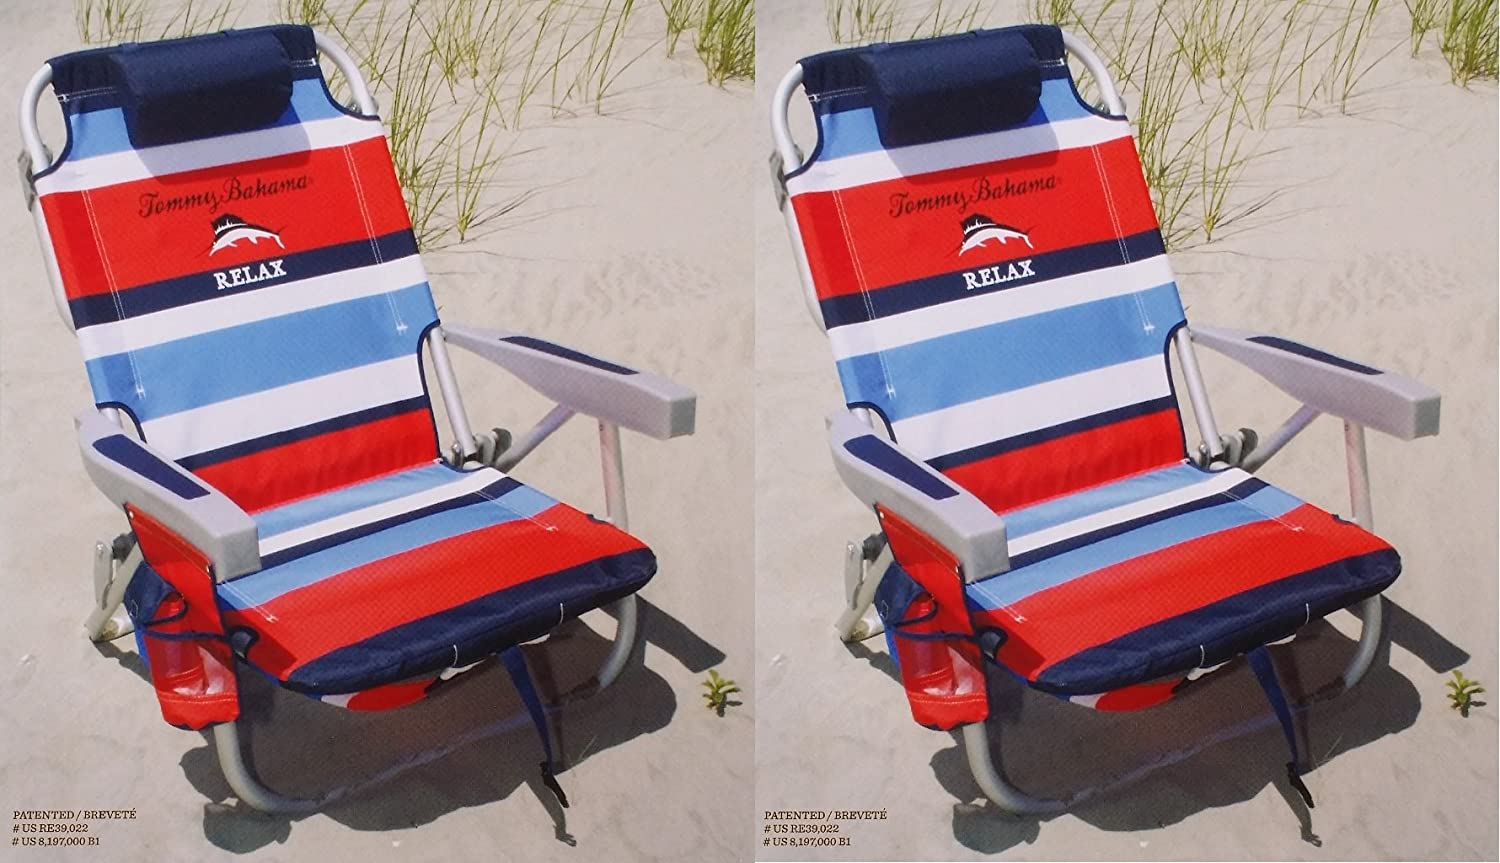 Tommy Bahama 2015 Backpack Cooler Chairs